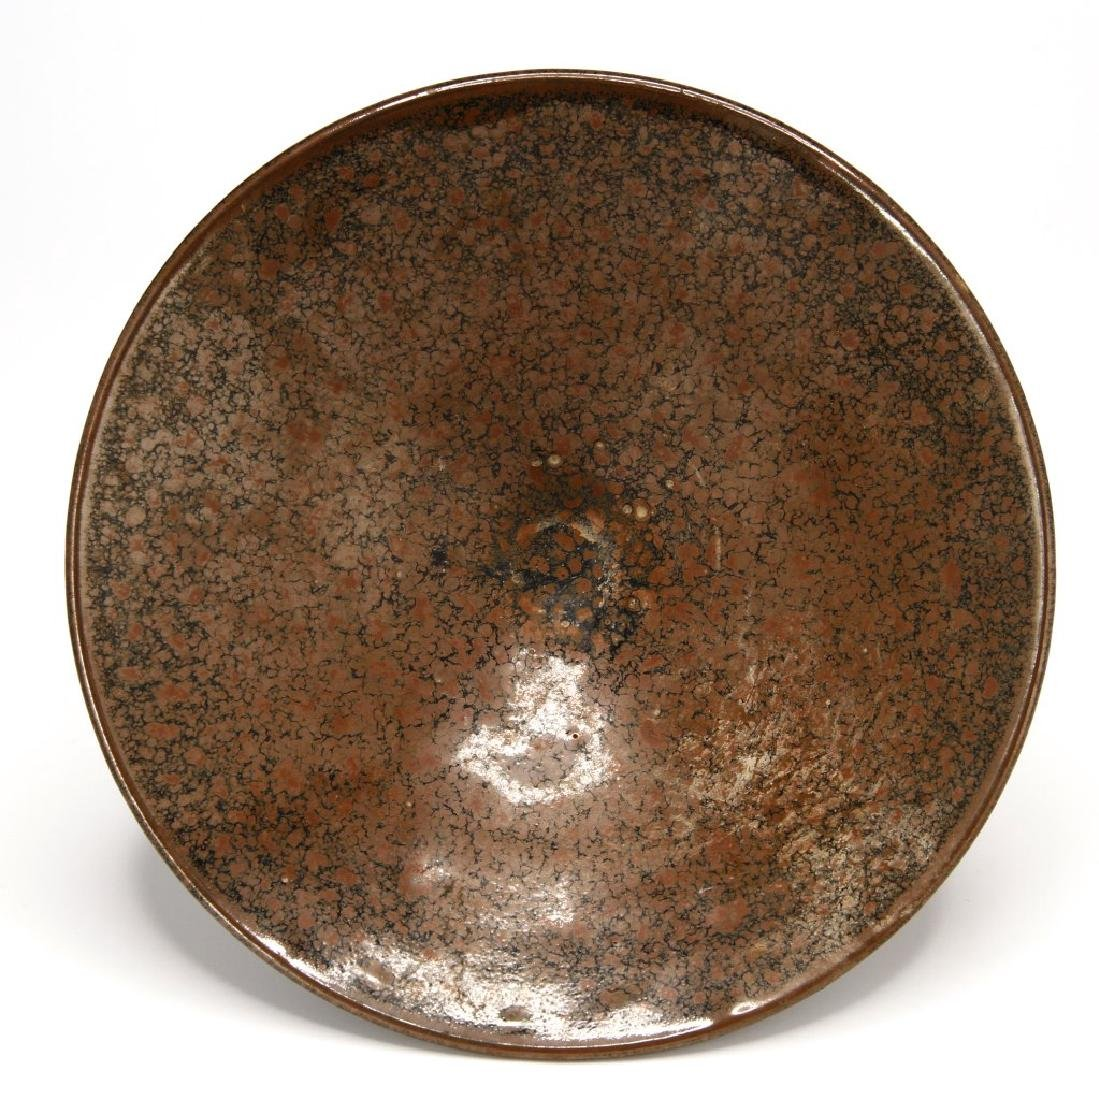 Chinese Henan Russet-Spotted Conical Bowl - 3